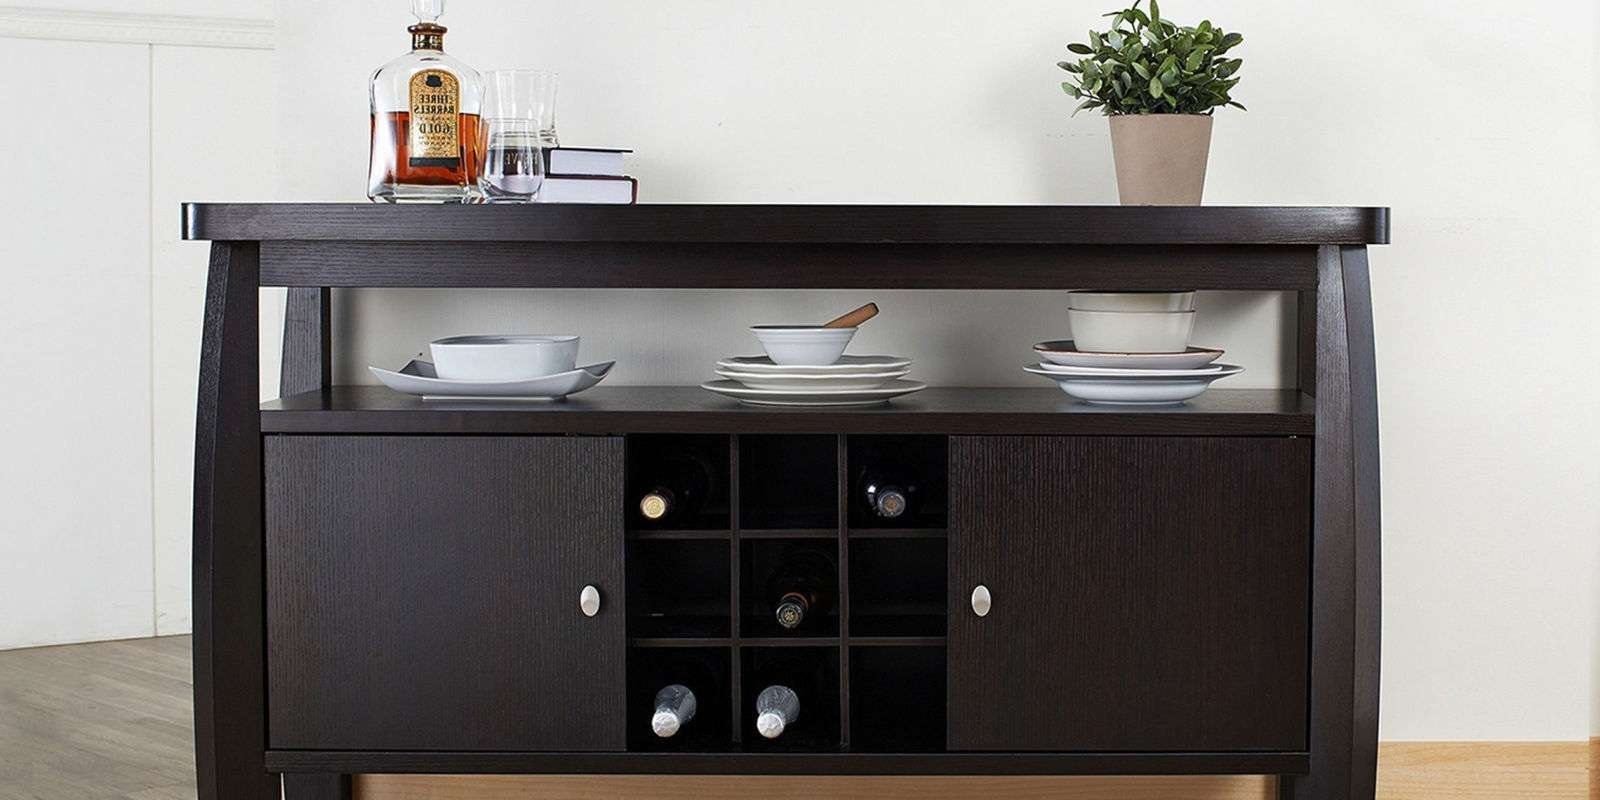 11 Best Sideboards And Buffets In 2018 – Reviews Of Sideboards Intended For Sideboards Decors (View 2 of 20)